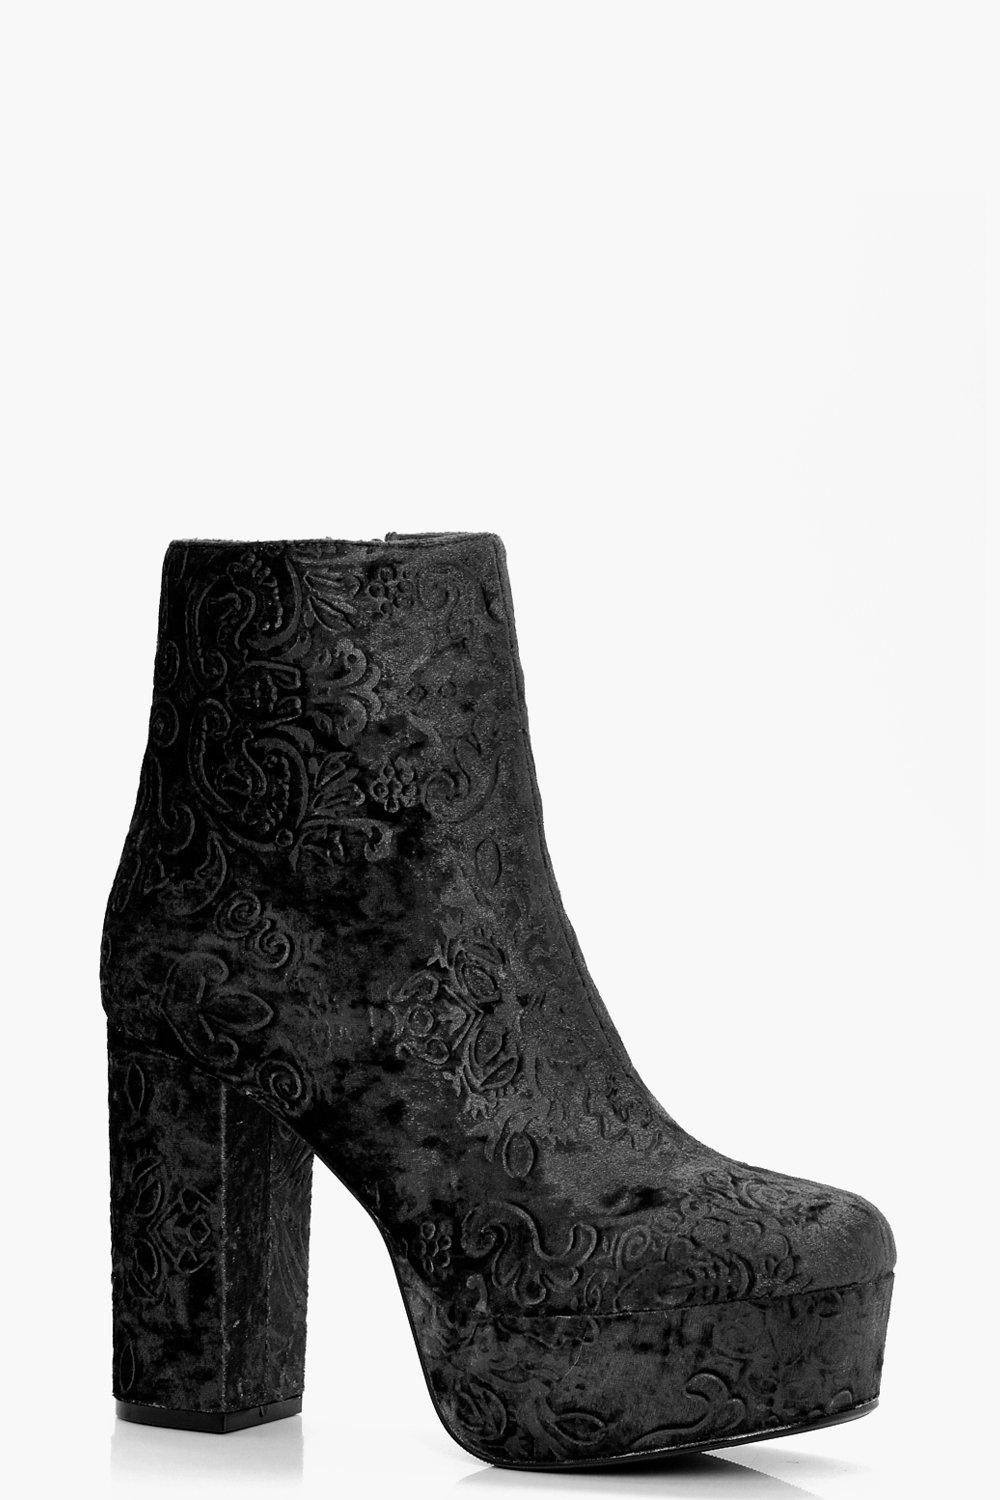 http://www.boohoo.com/faye-floral-embroidered-velvet-ankle-boot/DZZ43406.html?color=105